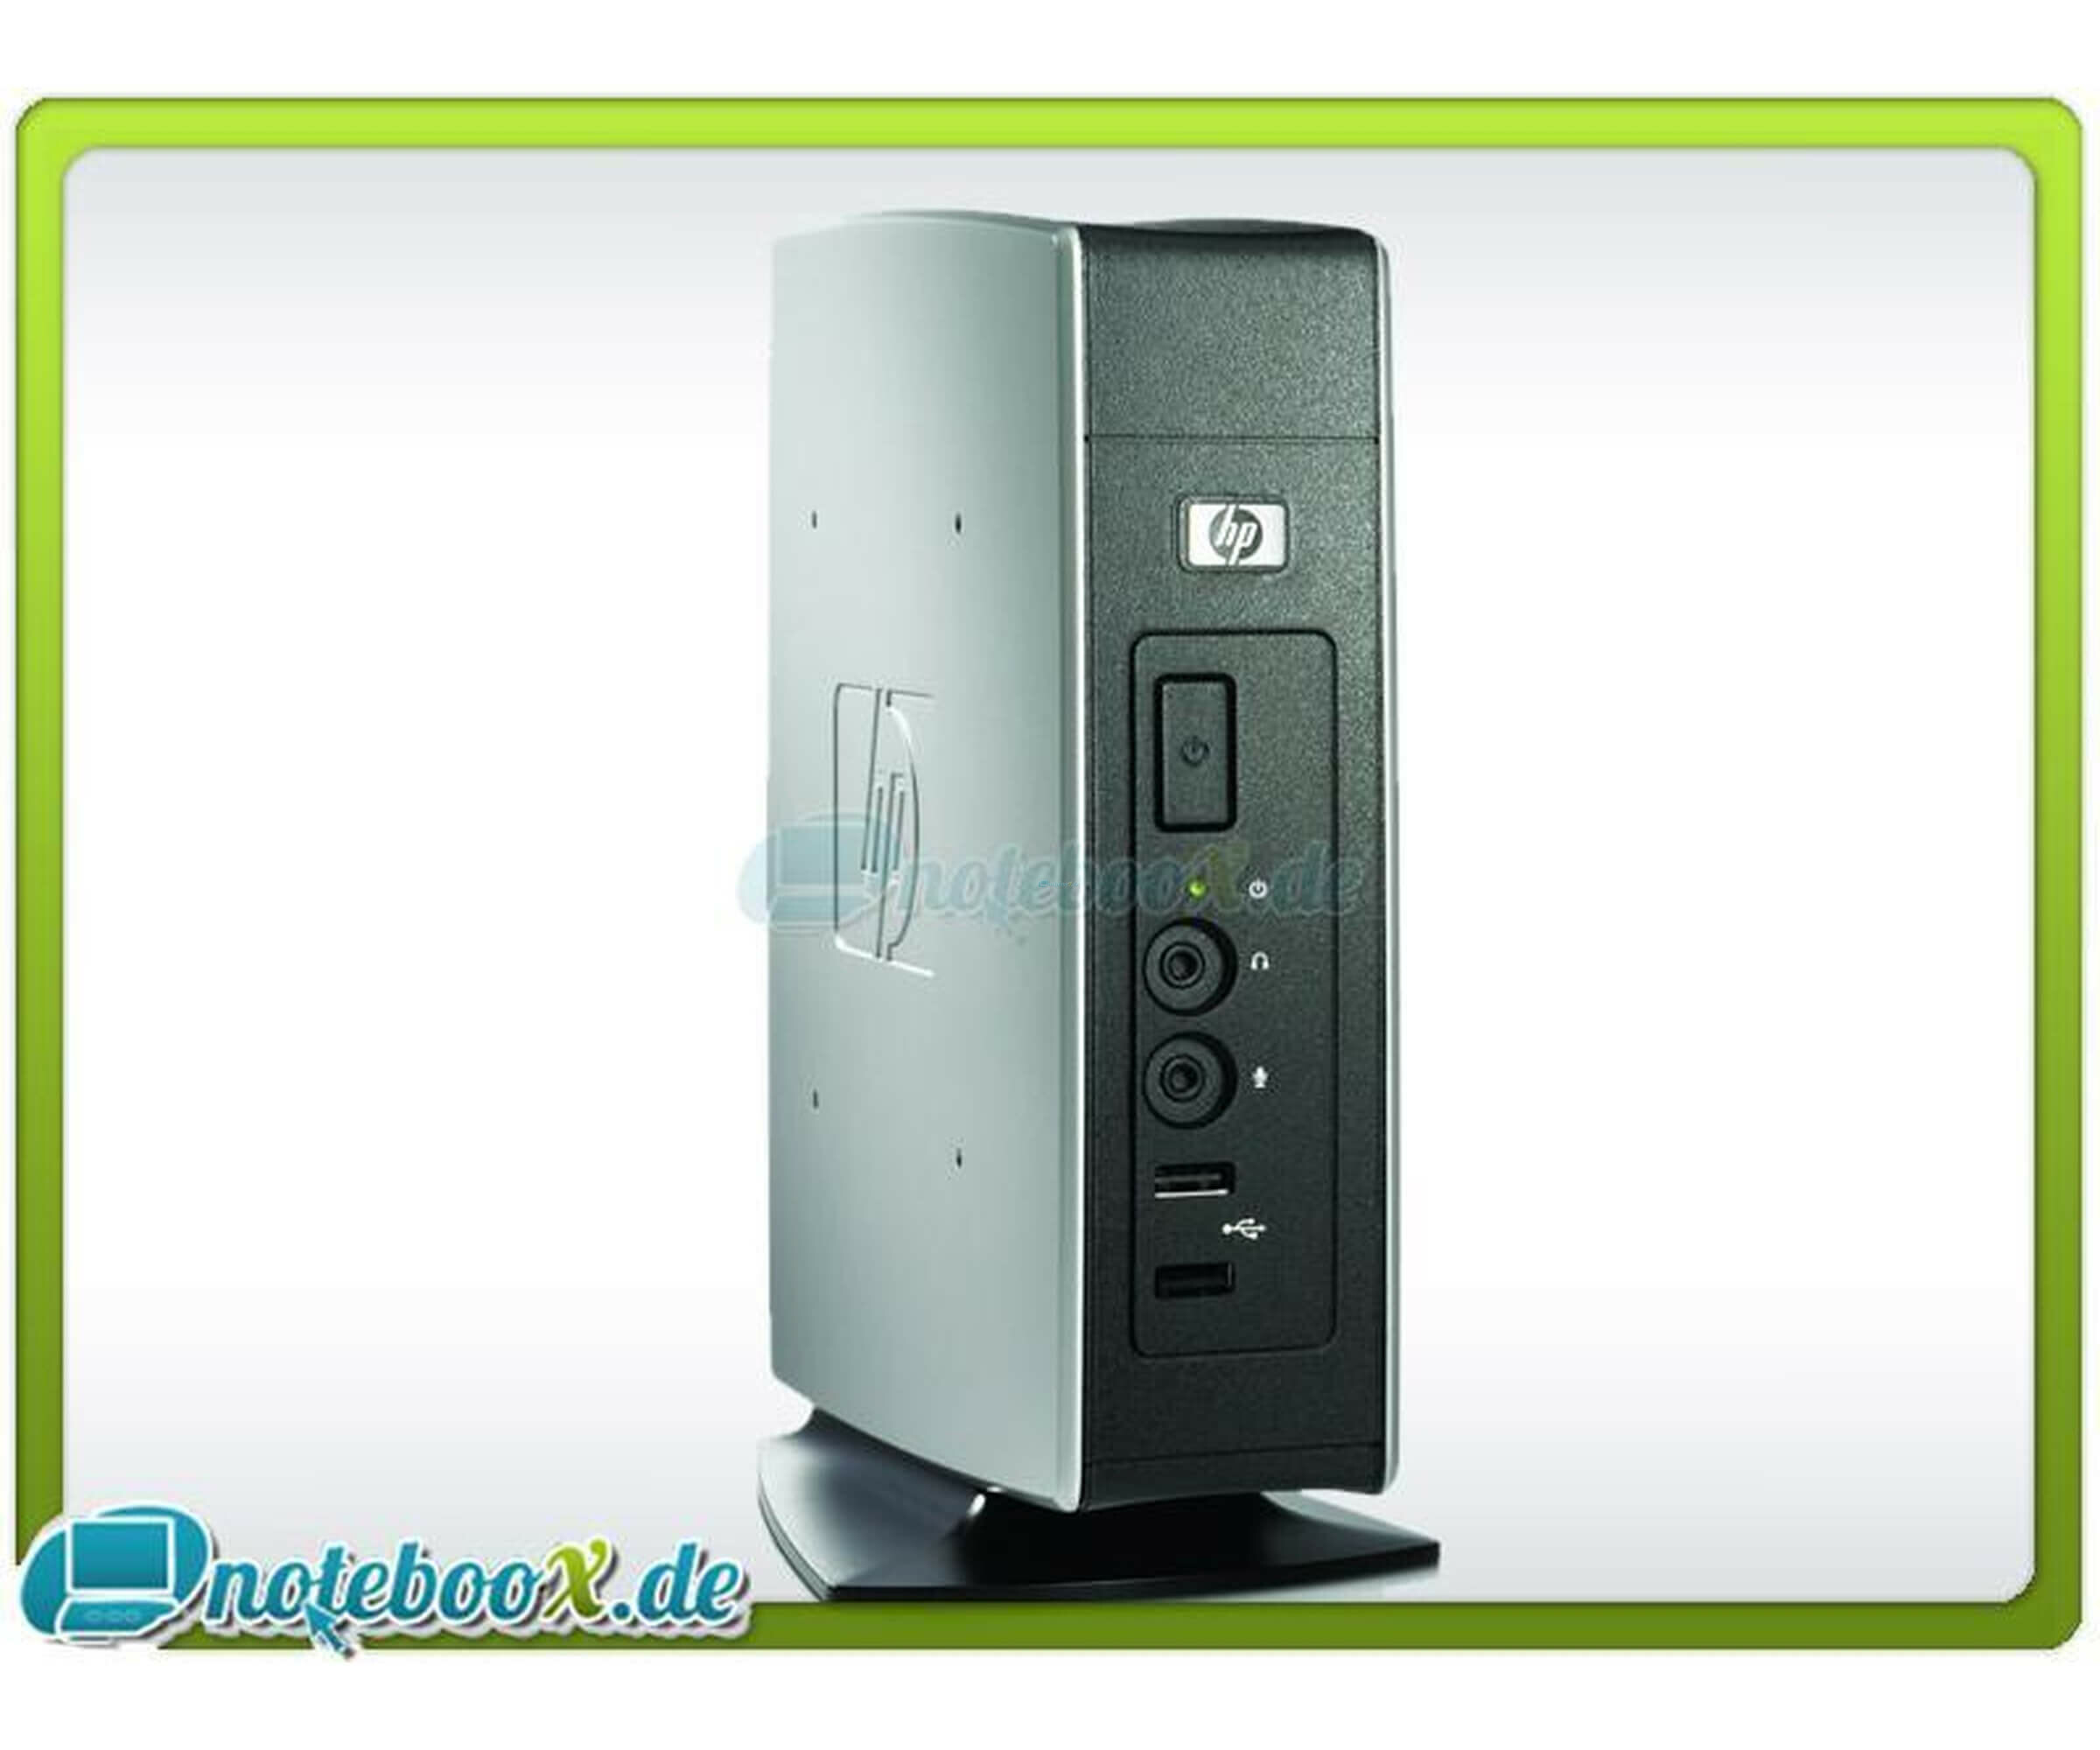 Gebraucht HP Thin Client t5540 - Tower - Eden 800 MHz - RAM 512 MB - Gigabit Ethernet